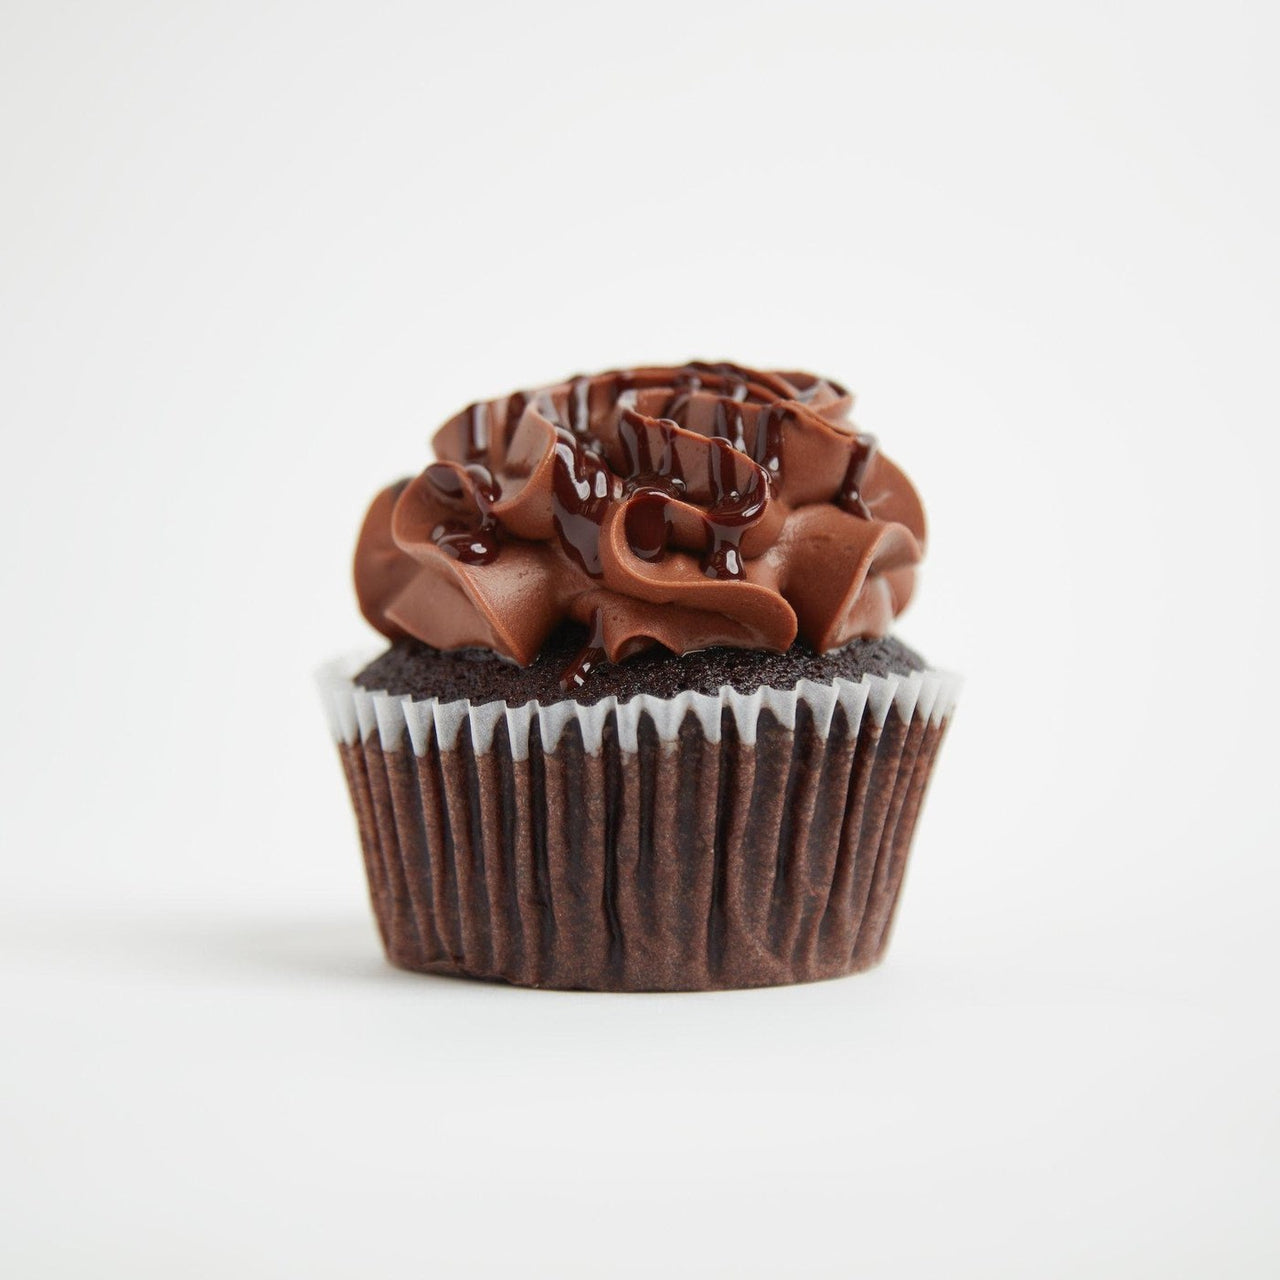 Triple Chocolate Cupcakes by Crumbs & Doilies